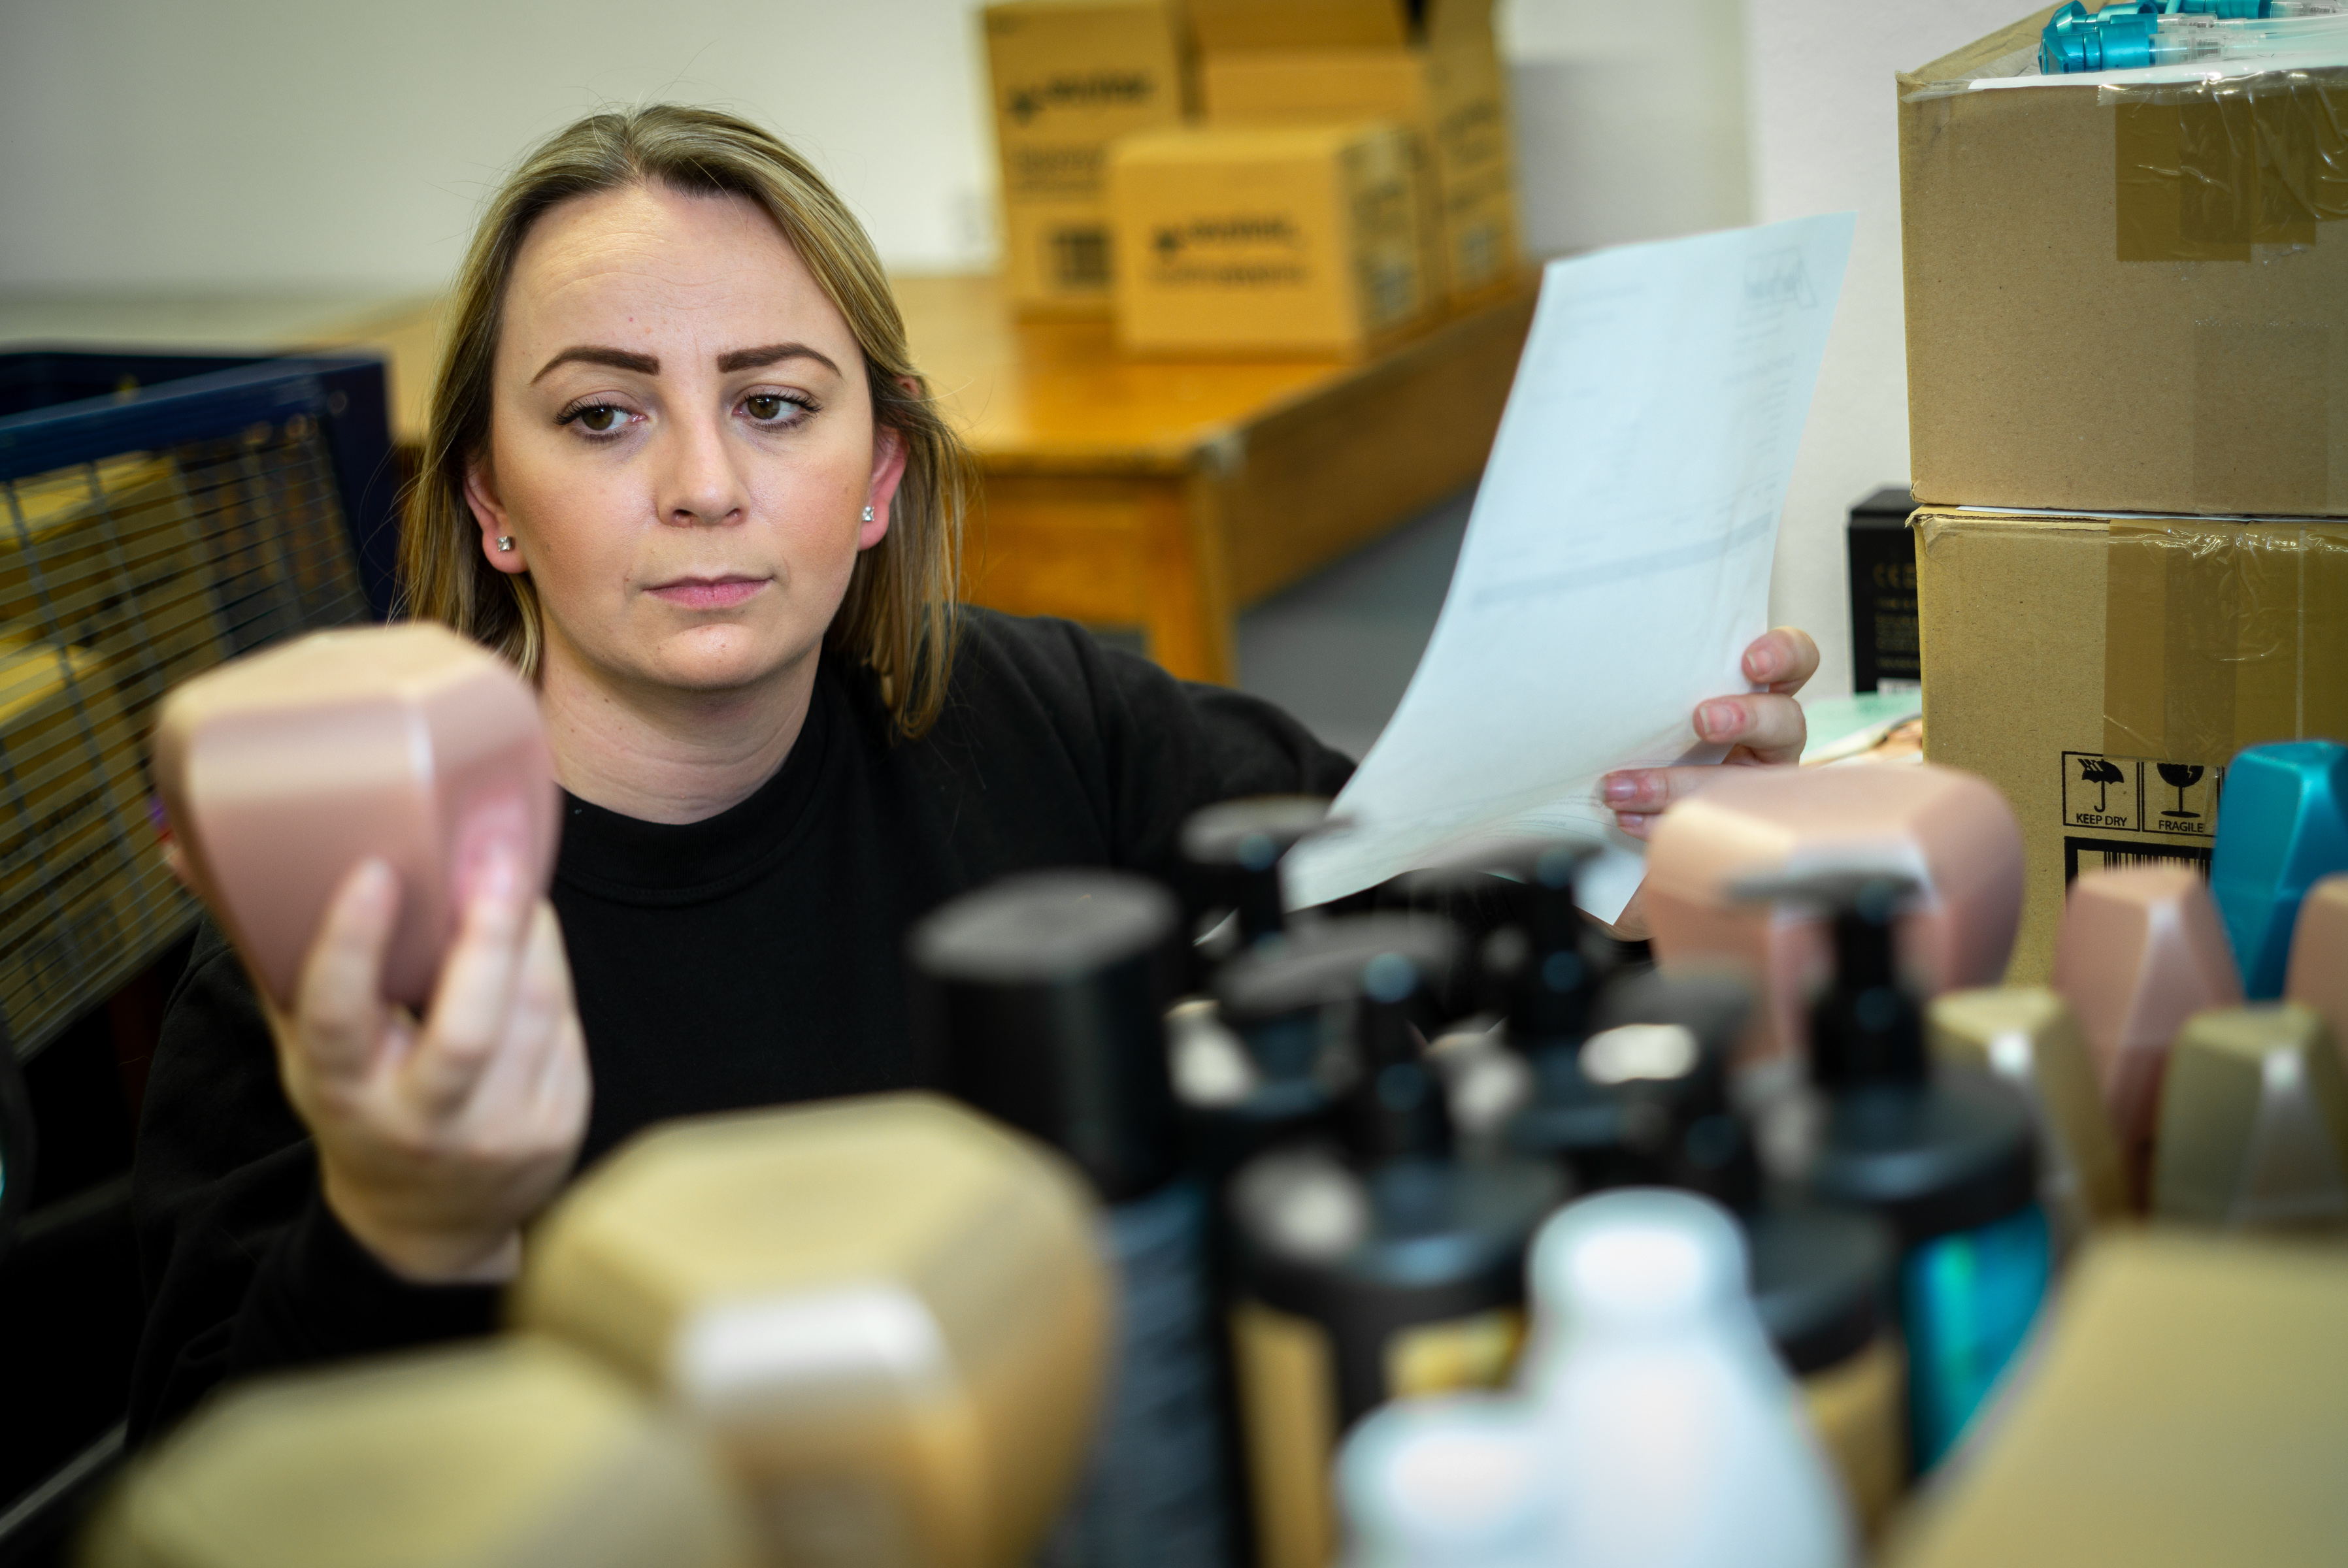 Beauty retailer is looking good thanks to new warehouse management system